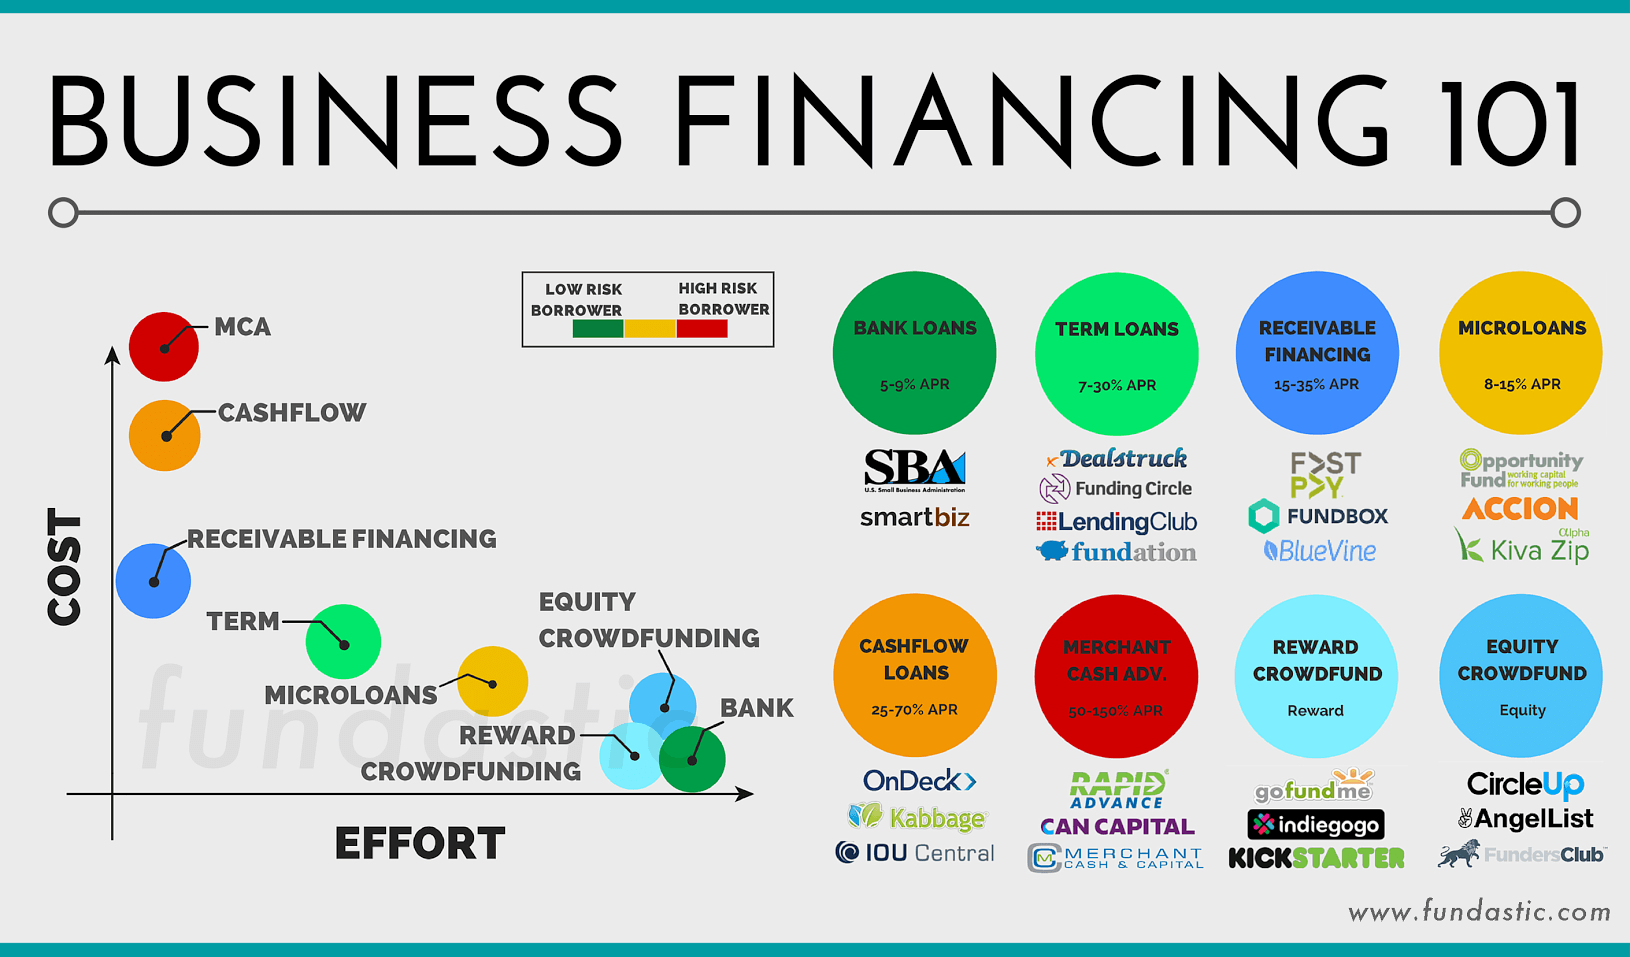 Finances need to be in order and something to consider before starting a new business